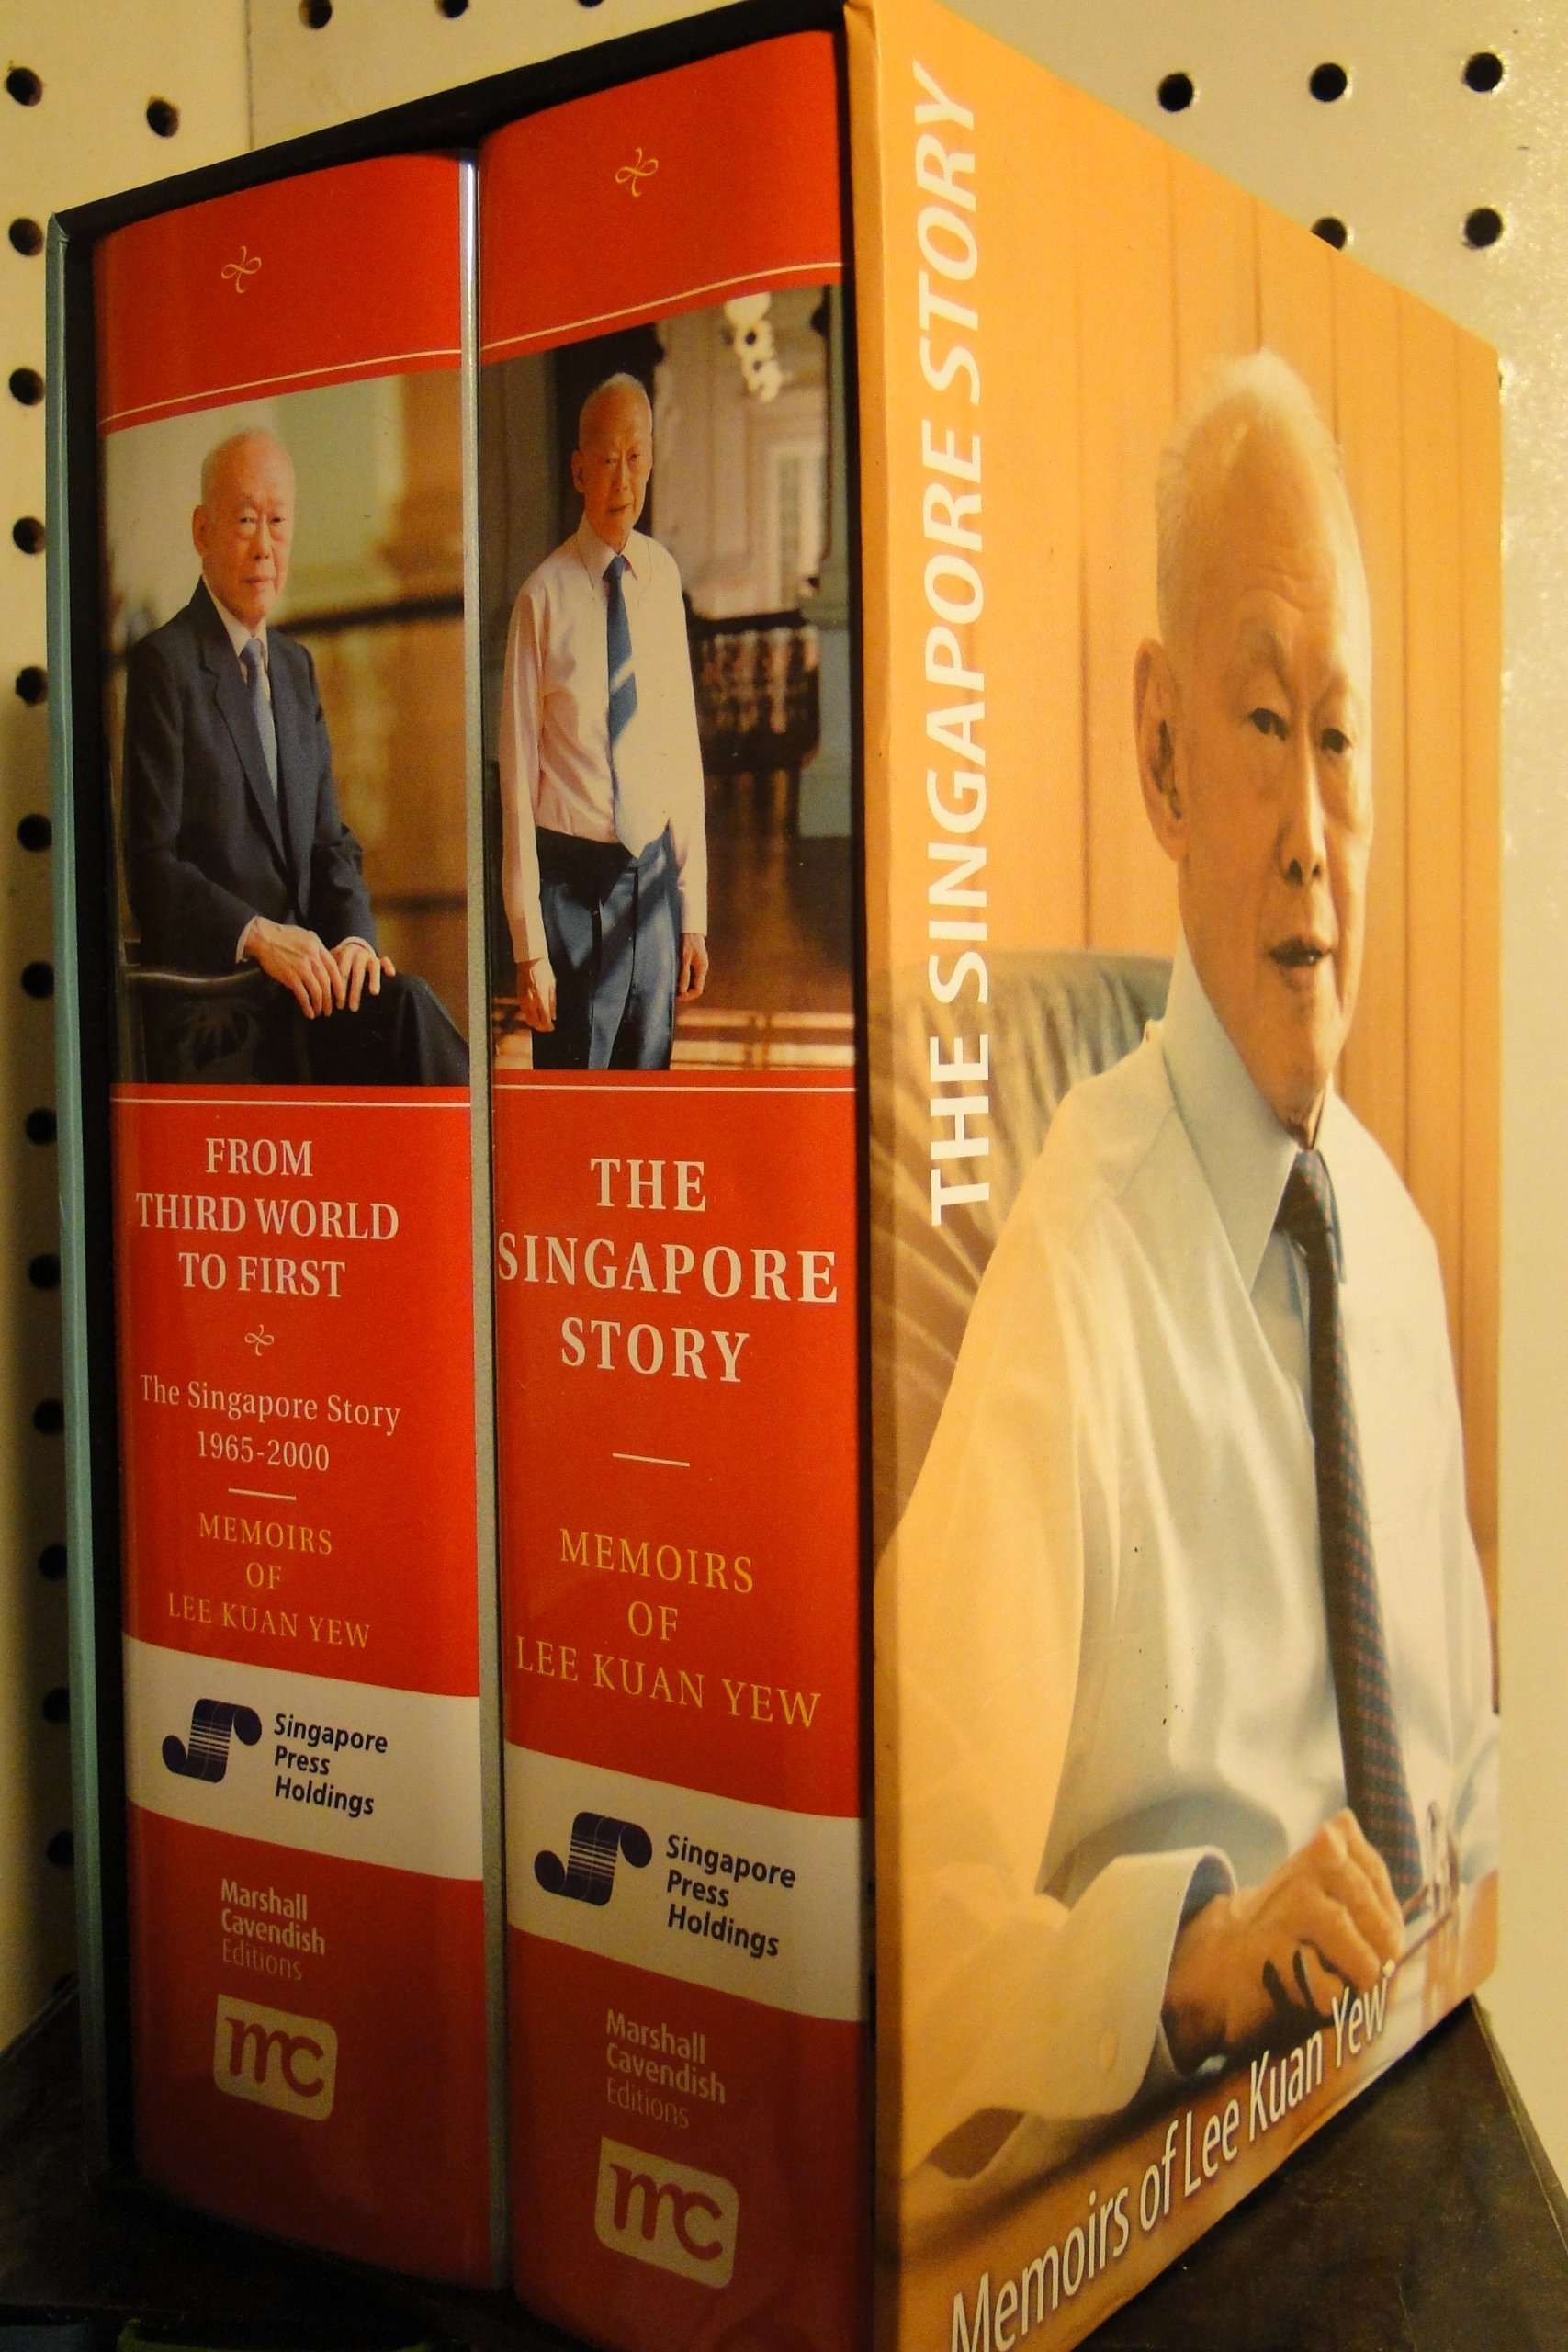 Memoirs of Lee Kuan Yew: The Singapore Story & From Third World To First